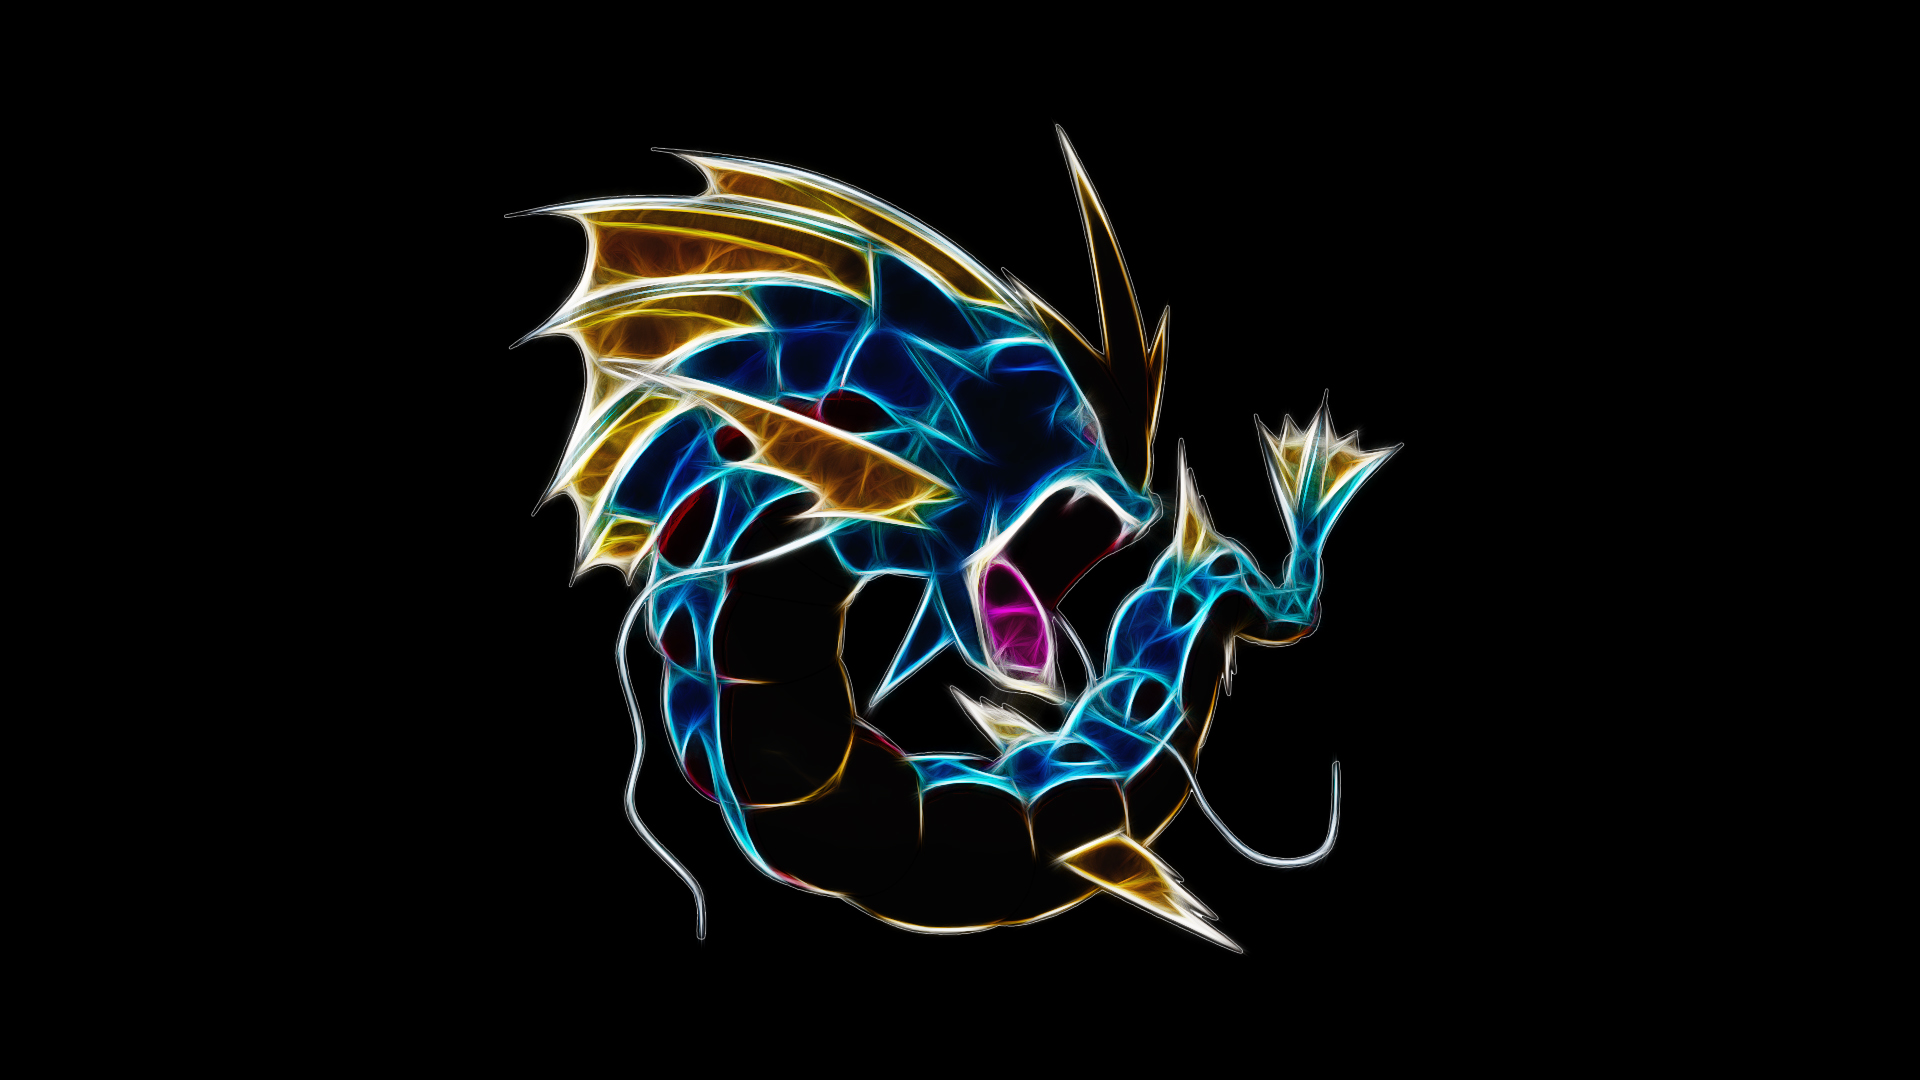 Mega Gyarados by TheBlackSavior on DeviantArt